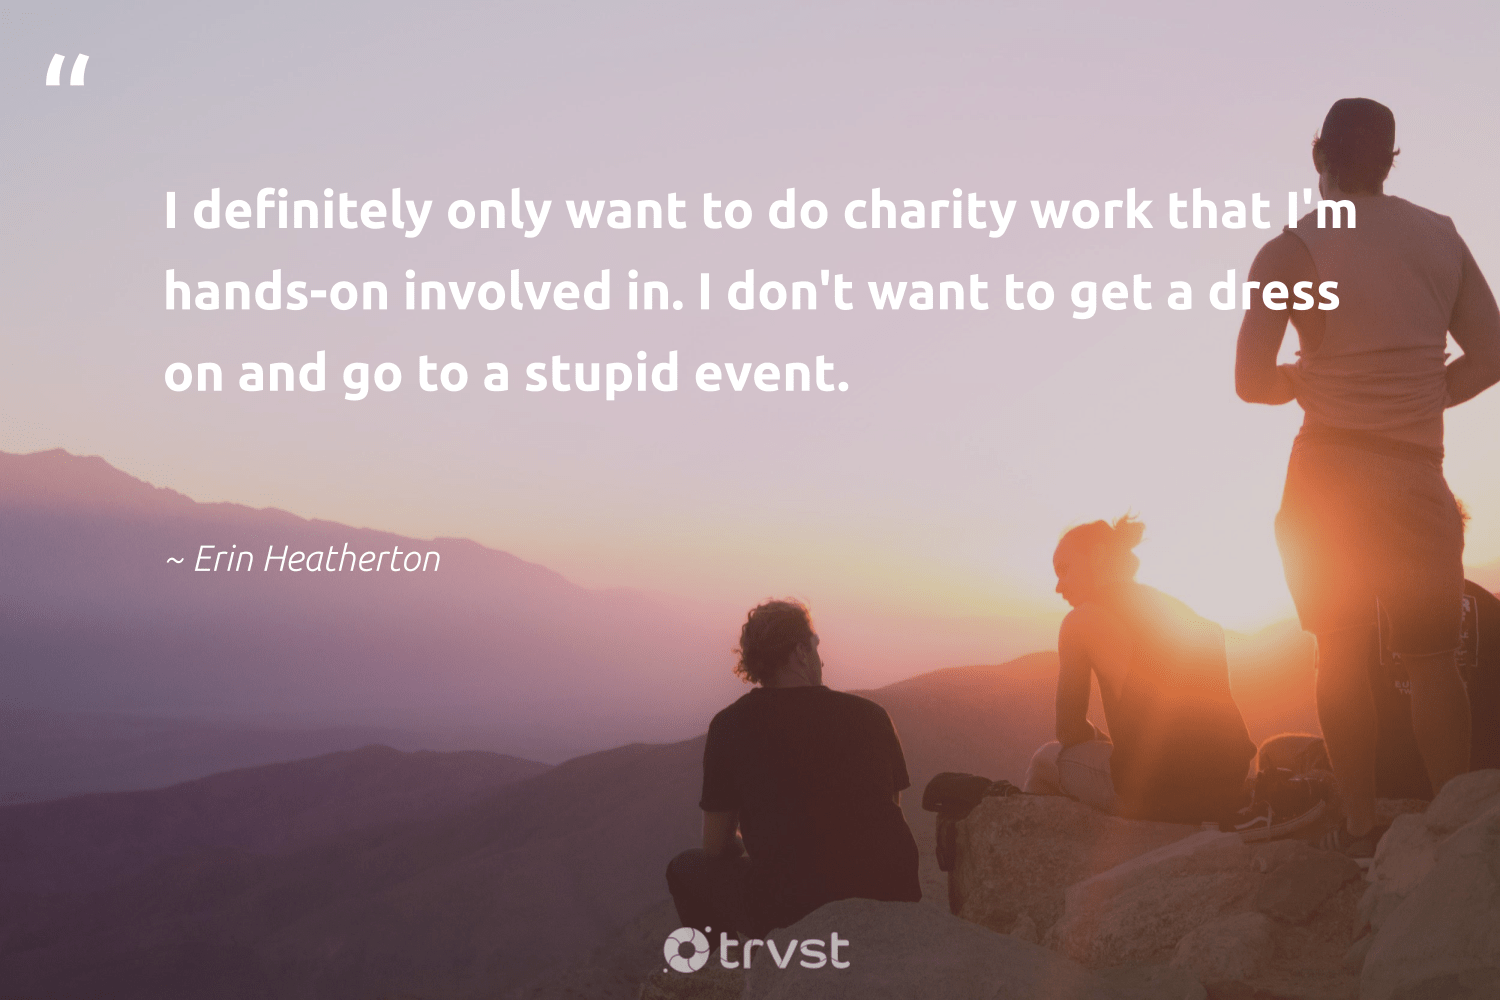 """""""I definitely only want to do charity work that I'm hands-on involved in. I don't want to get a dress on and go to a stupid event.""""  - Erin Heatherton #trvst #quotes #socialchange #thinkgreen #betterplanet #collectiveaction #strongercommunities #gogreen #makeadifference #ecoconscious #society #planetearthfirst"""